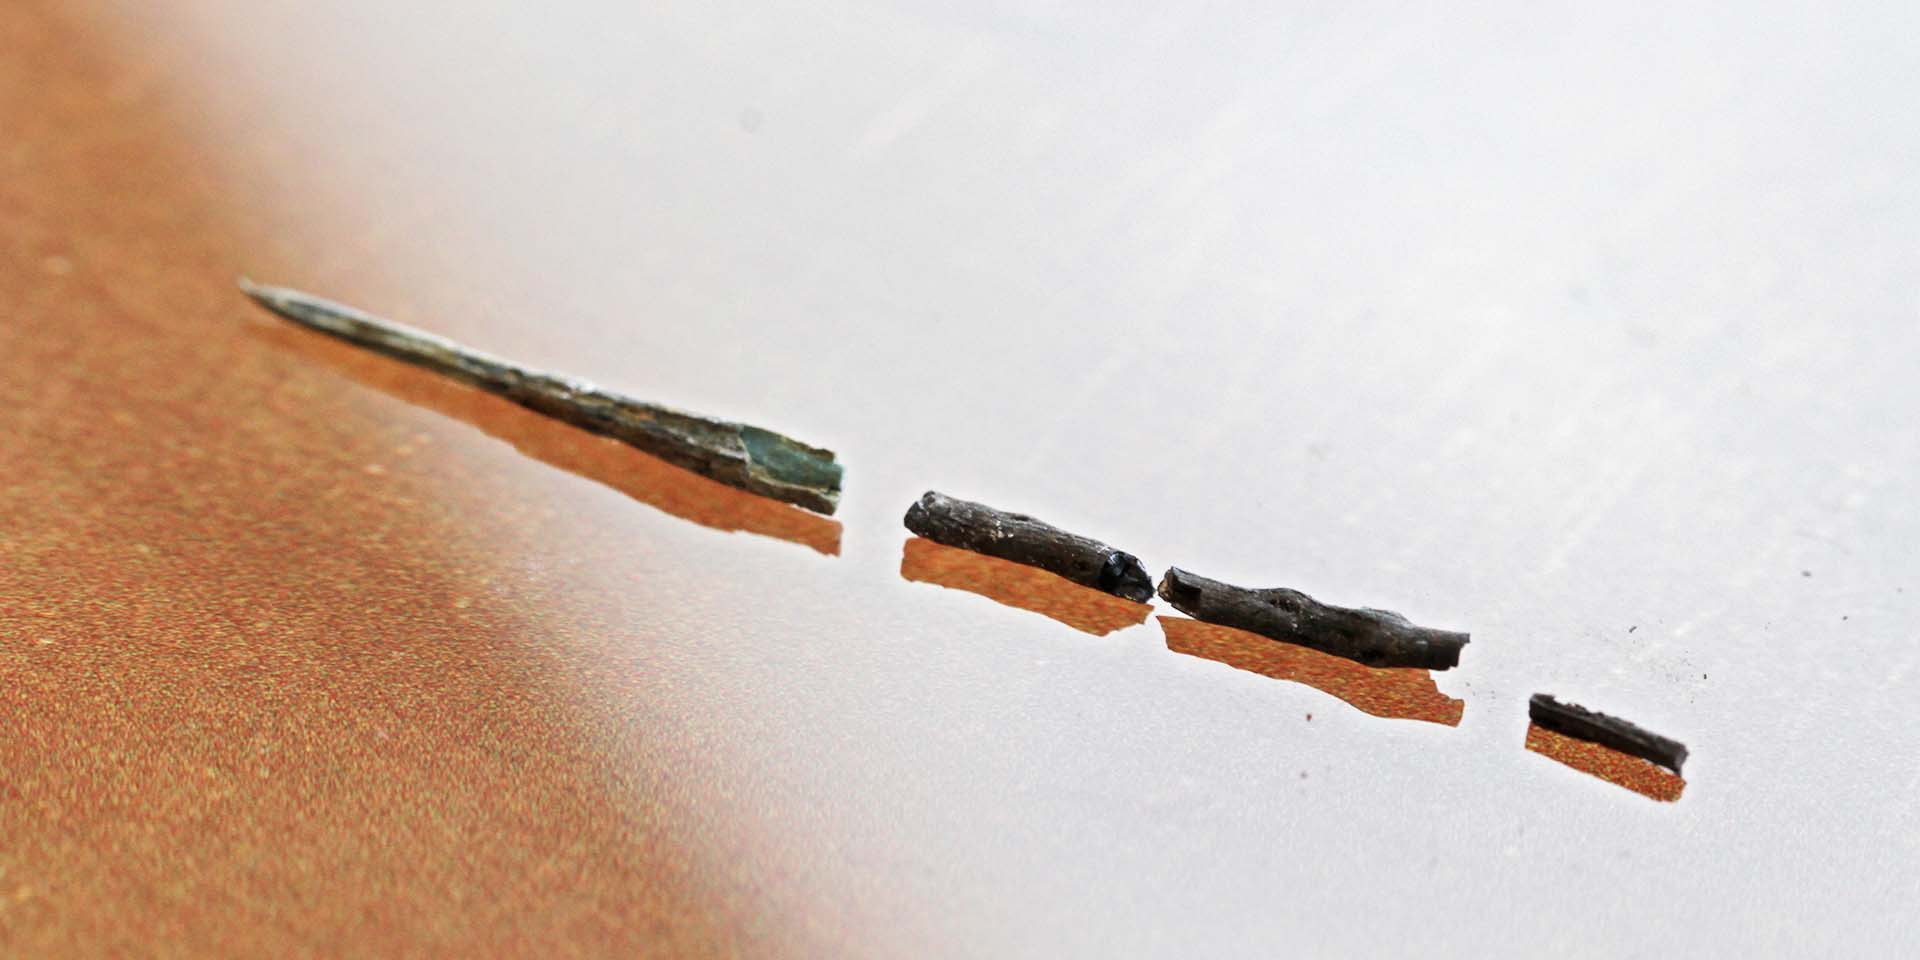 Close-up of copper alloy pin